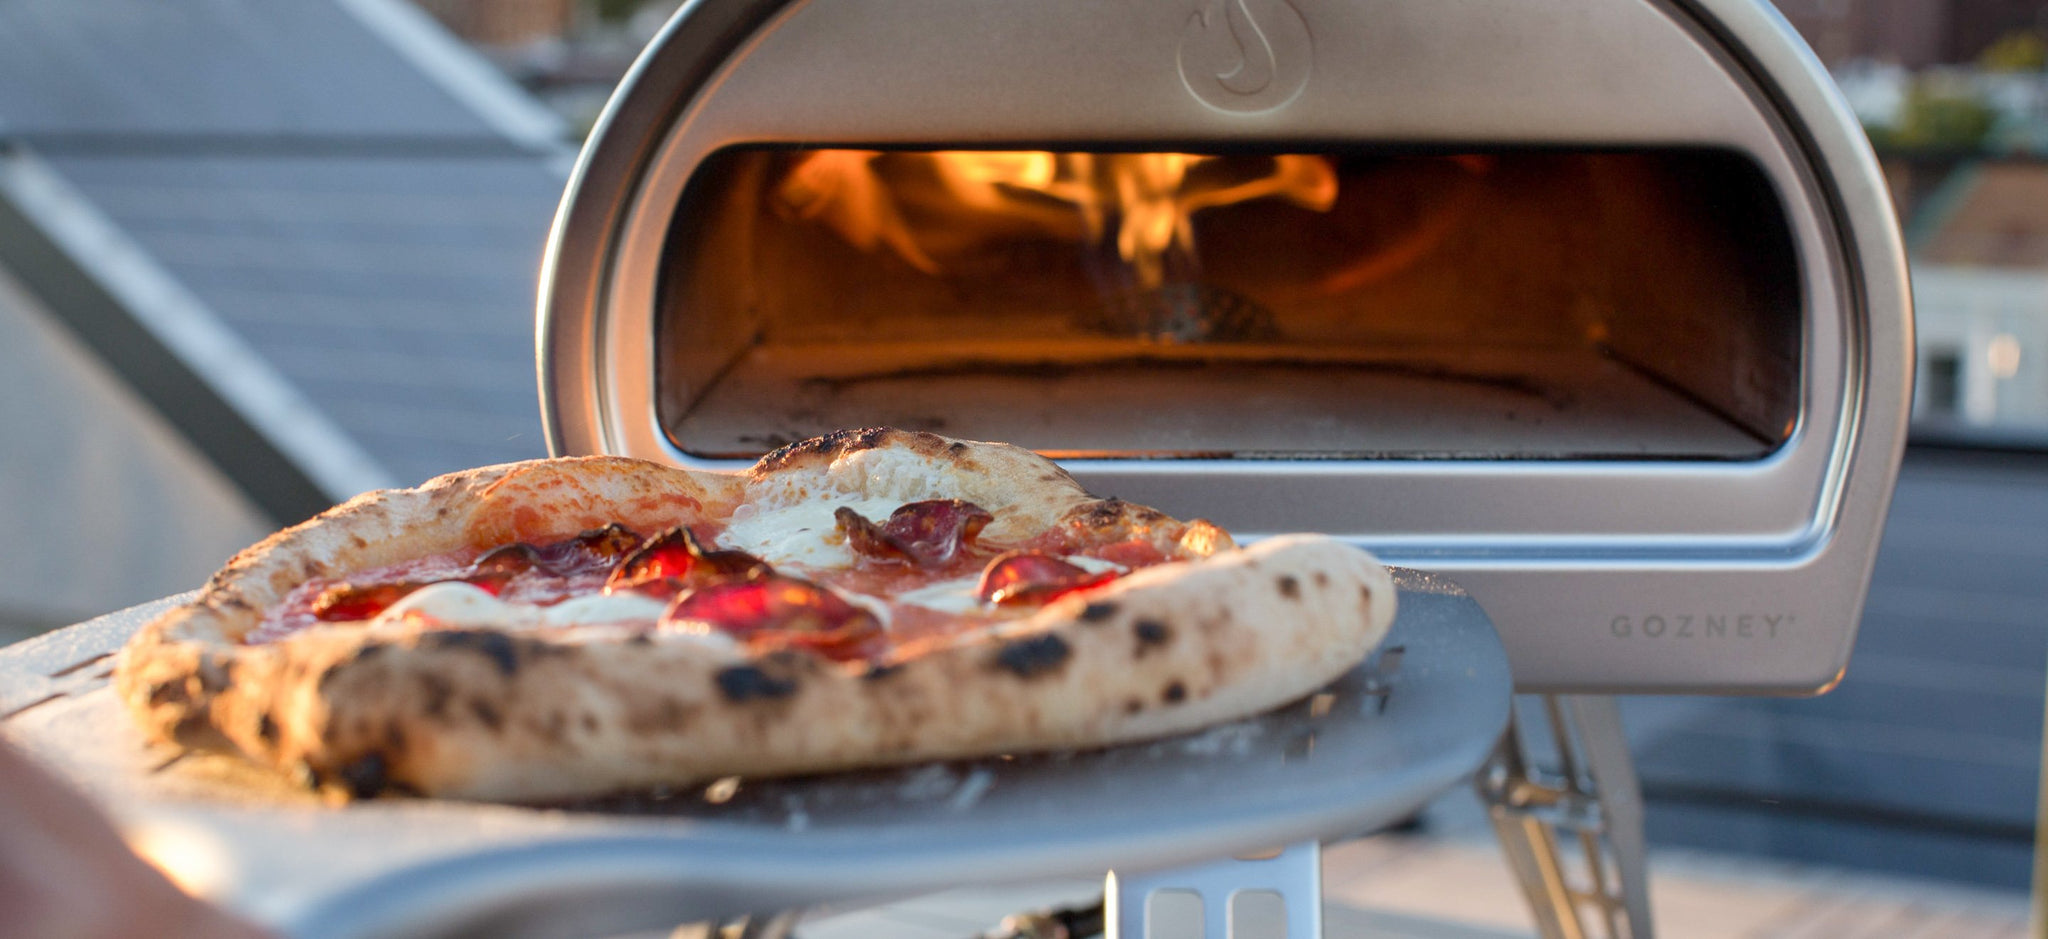 Home pizza oven